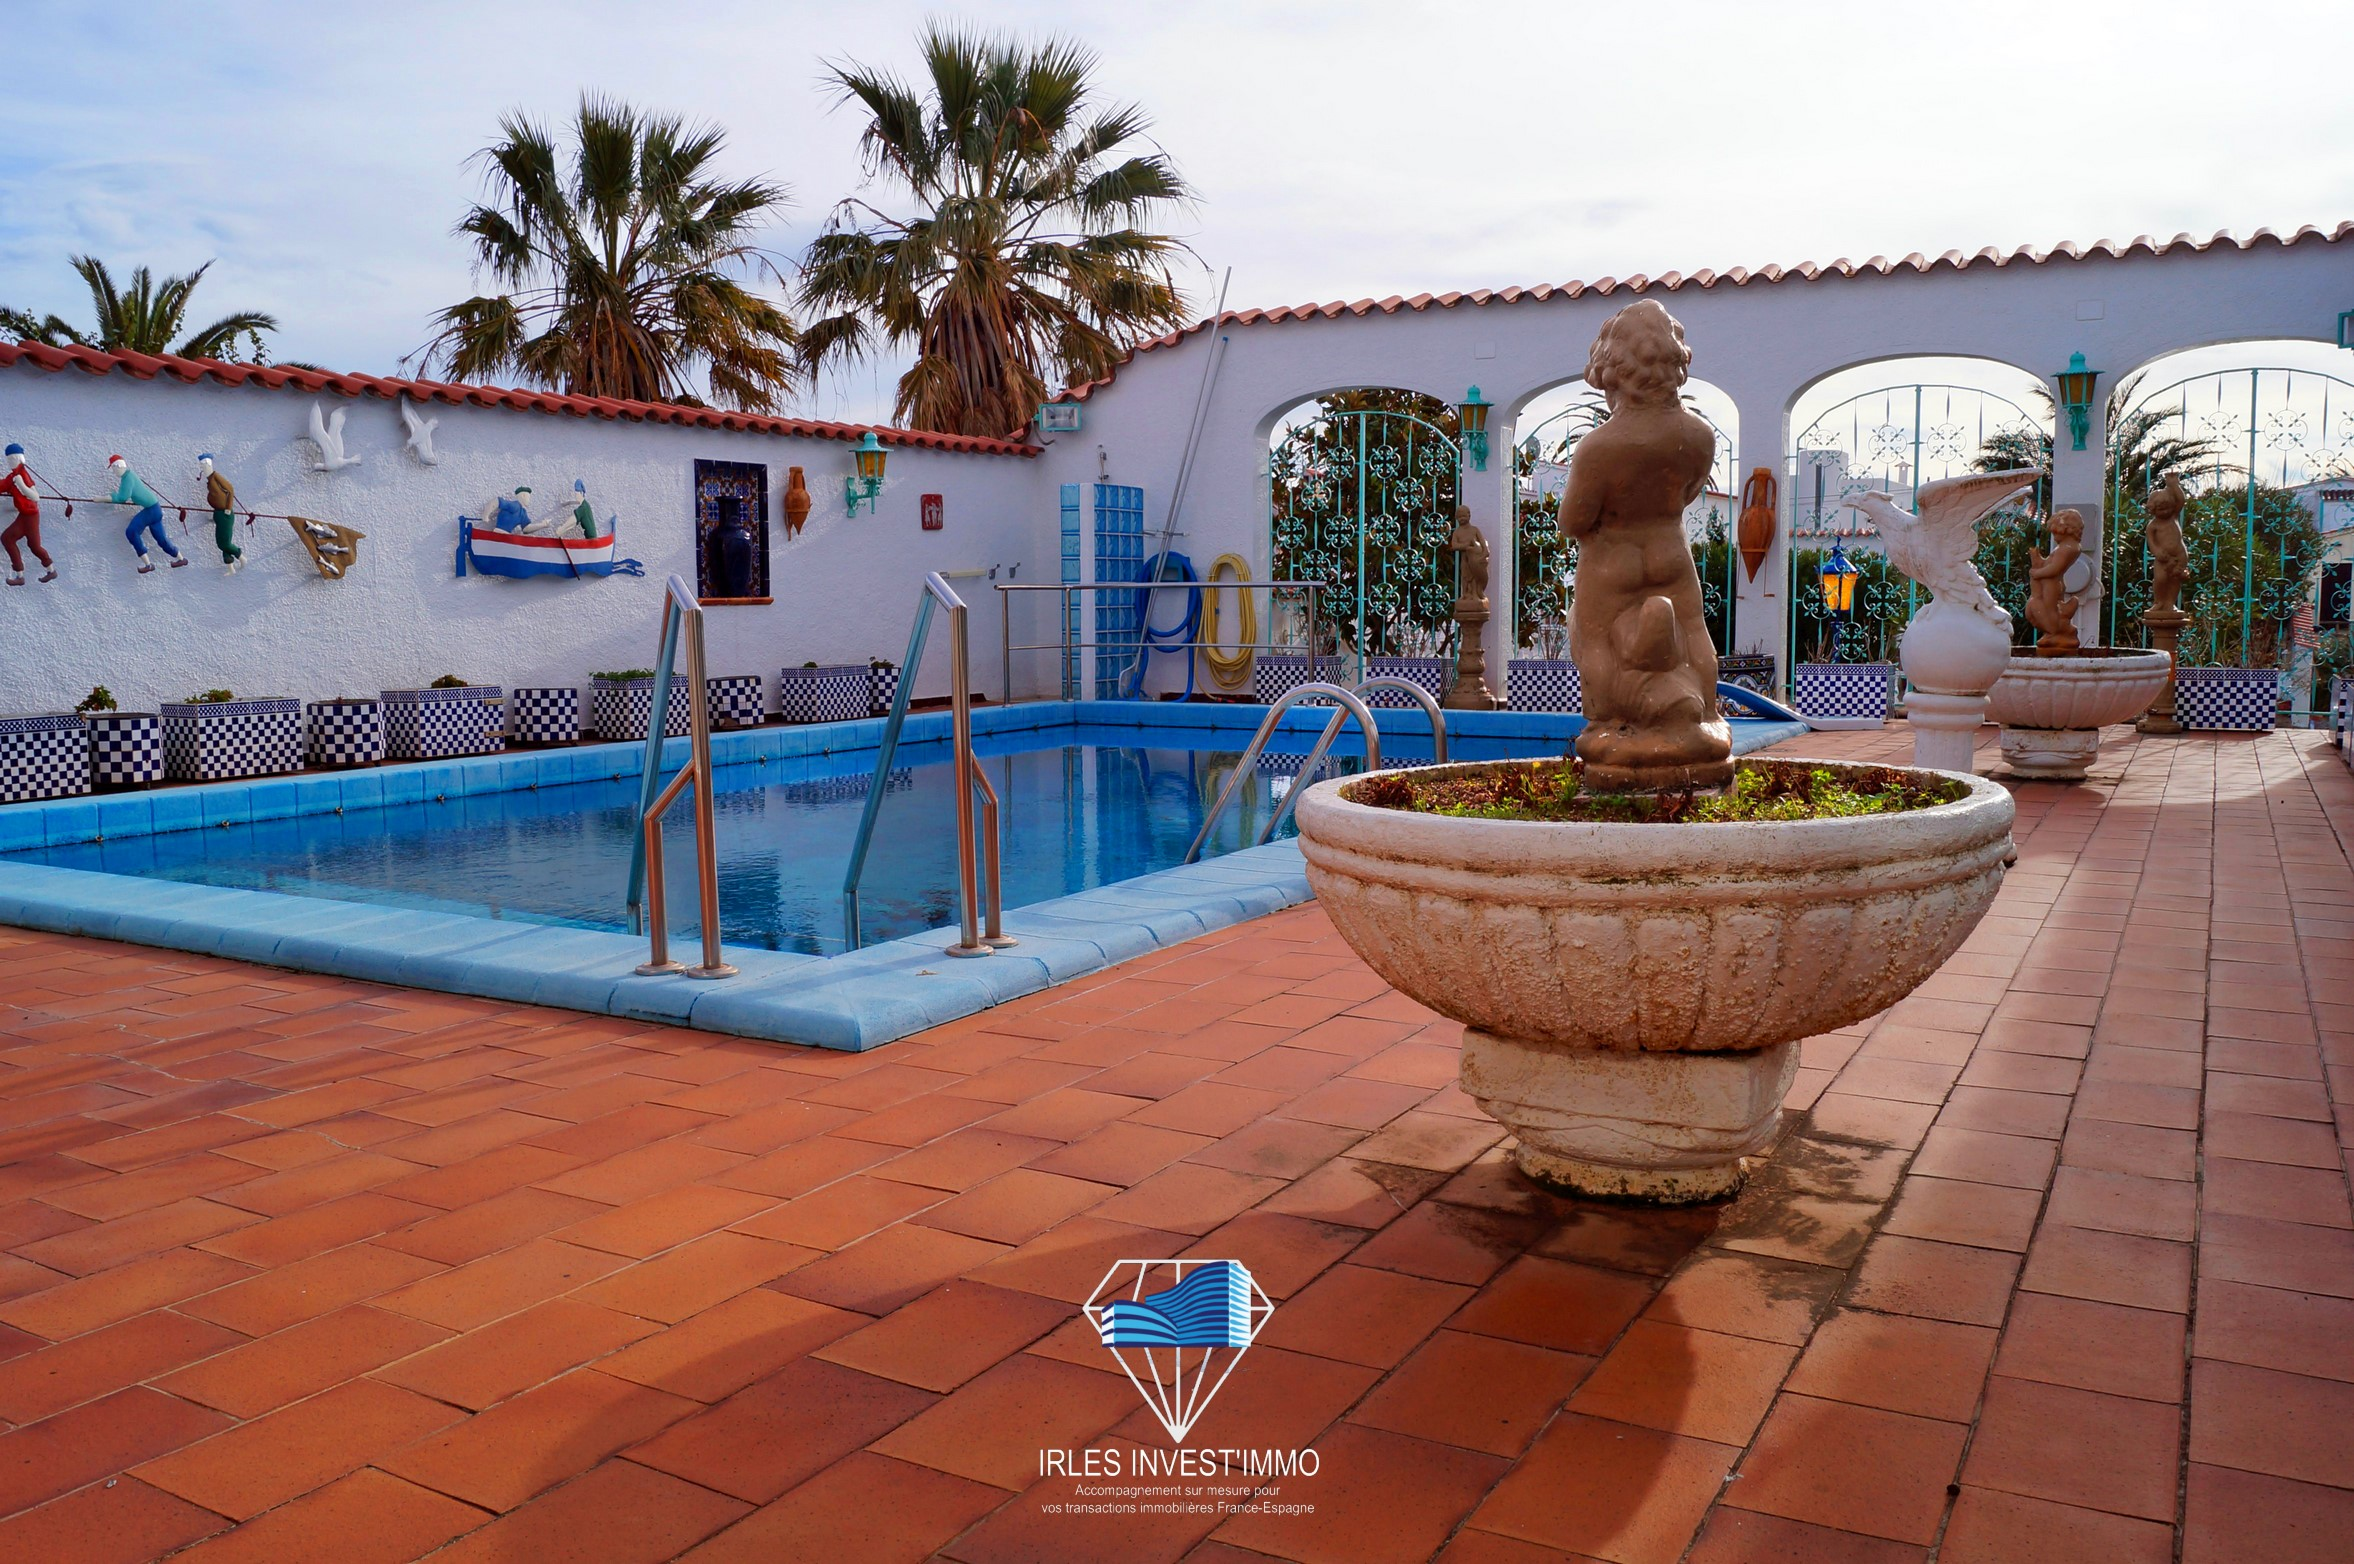 Vente Appartement Roses Empuriabrava House With Mooring And Pool